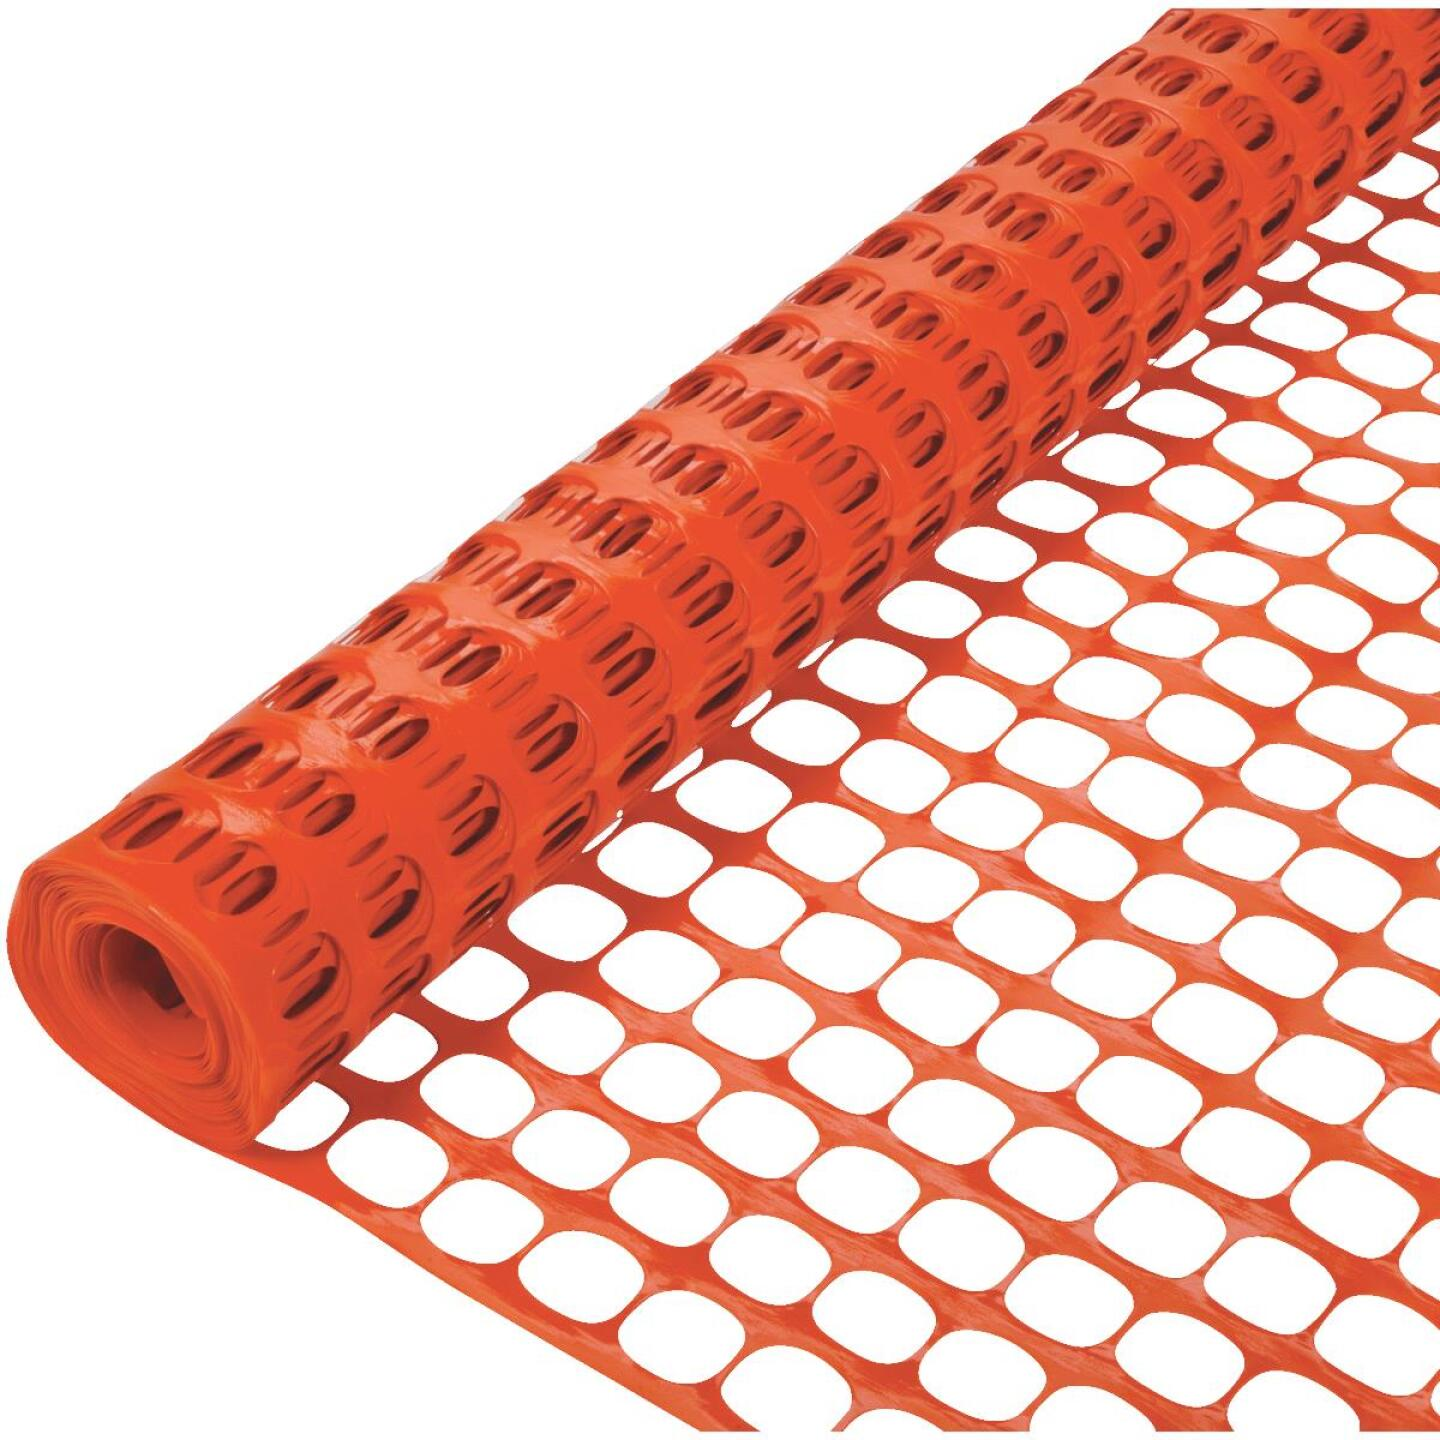 Tenax Sno-Guard 4 Ft. H. x 50 Ft. L. Polyethylene Snow Safety Fence, Orange Image 2